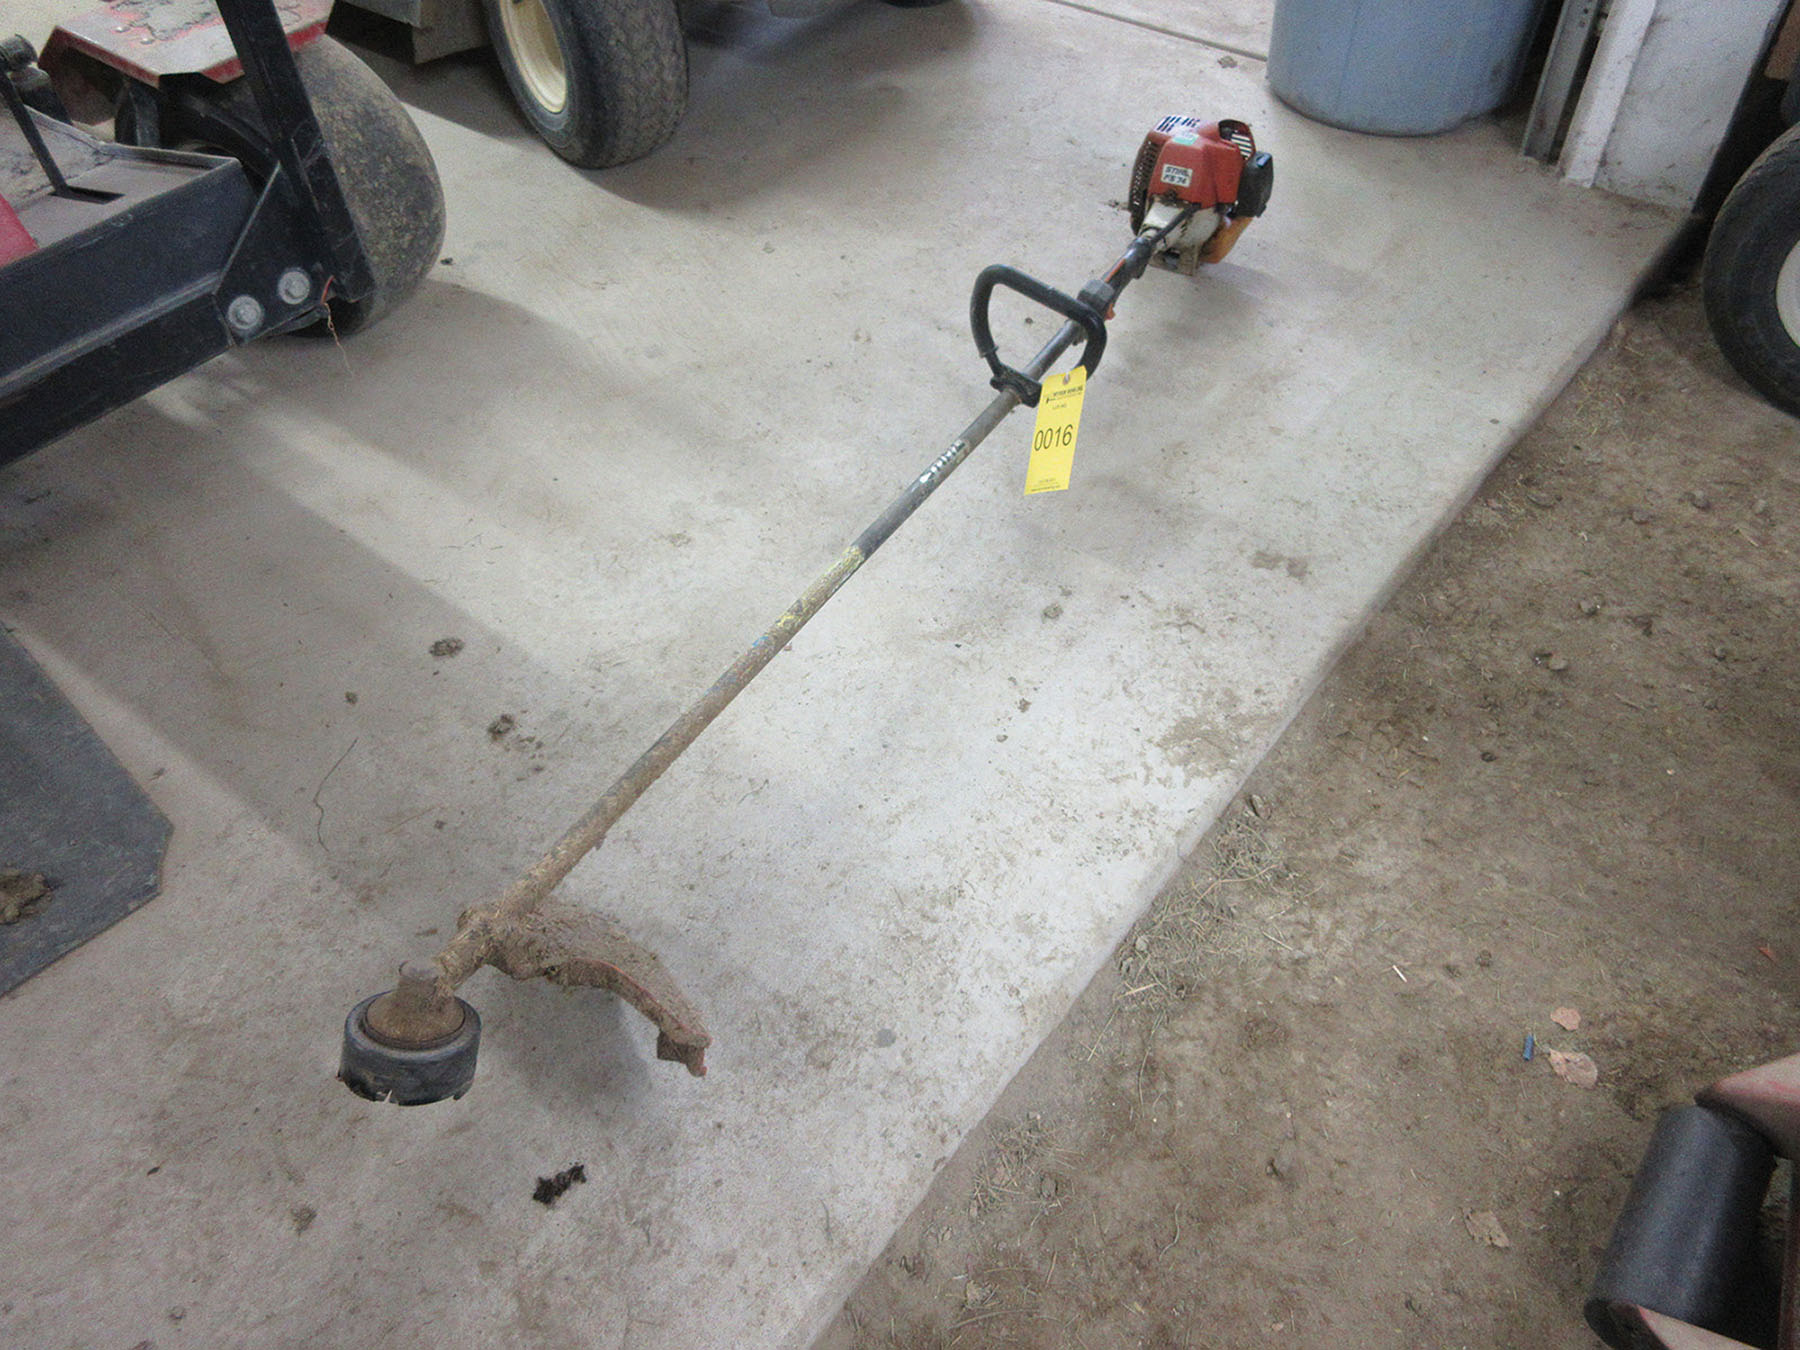 Lot 16 - STIHL FS-74 WEED EATER